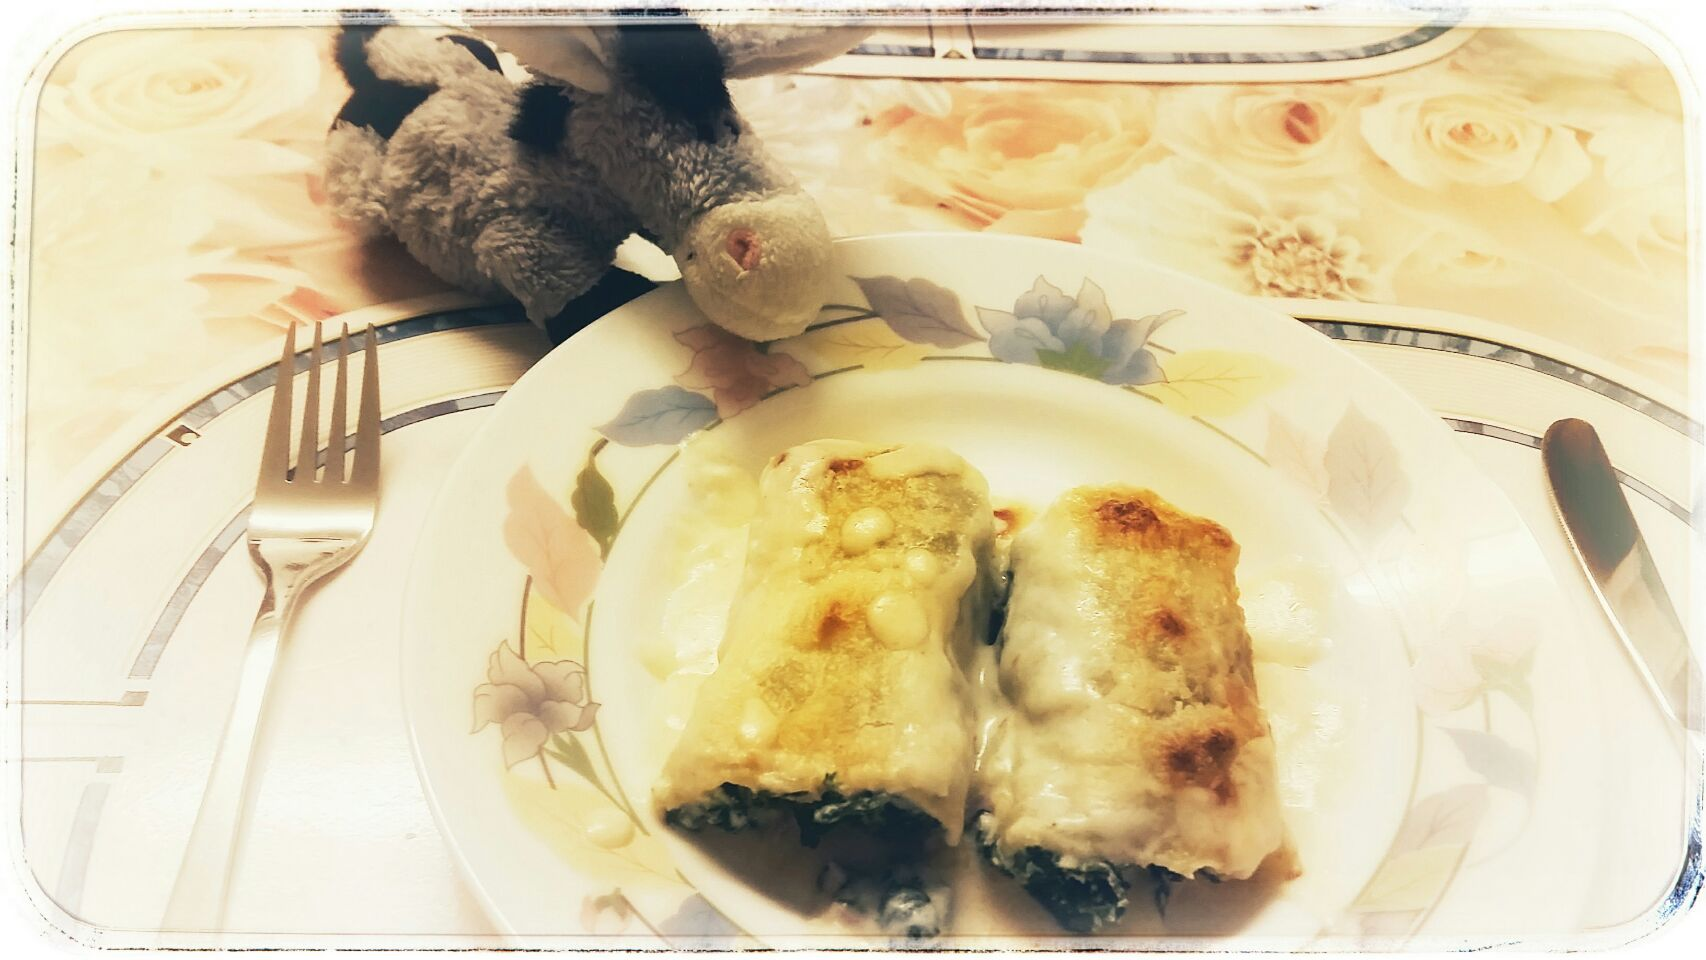 Little donkey's favourite: Selfmade Pasta filled with Ricotta, Ham, Spinach gratinated with Béchamel sauce and Parmesan cheese